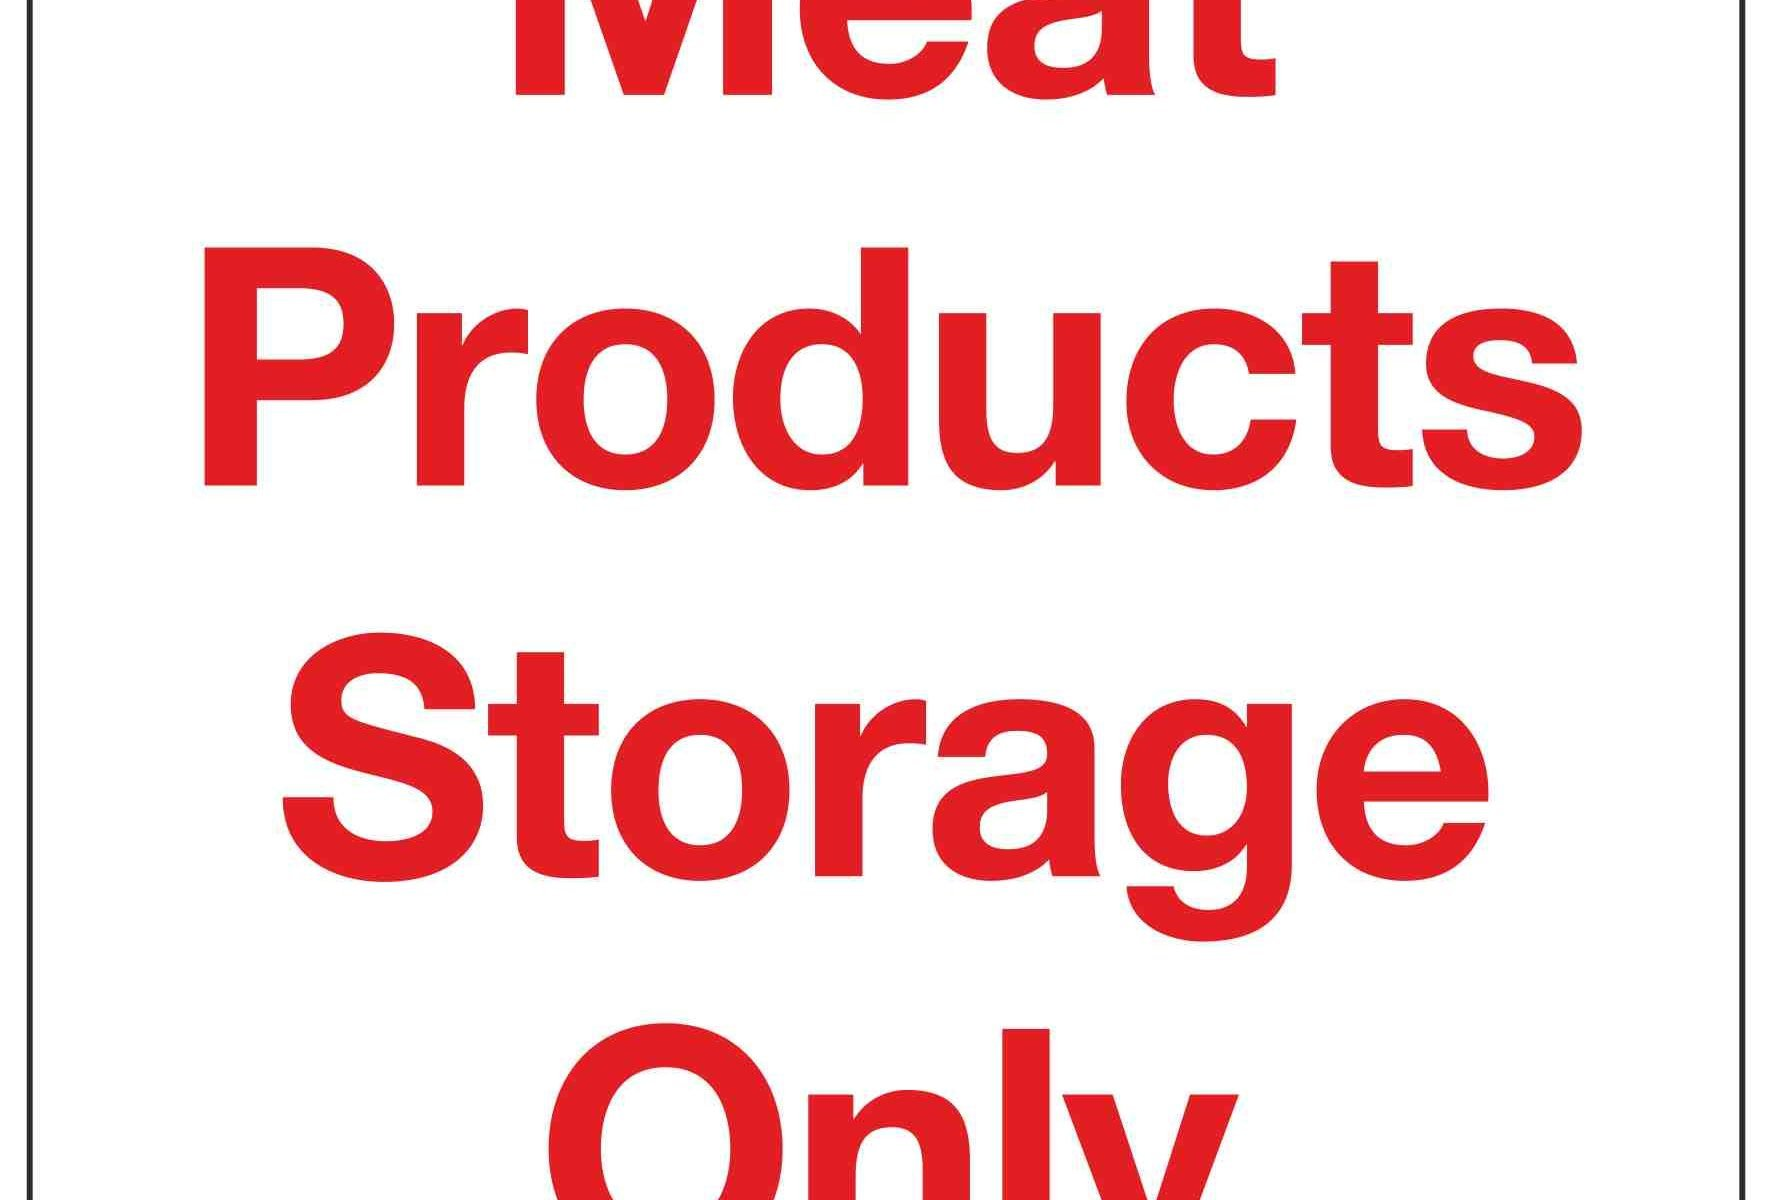 Meat Products Storage Only